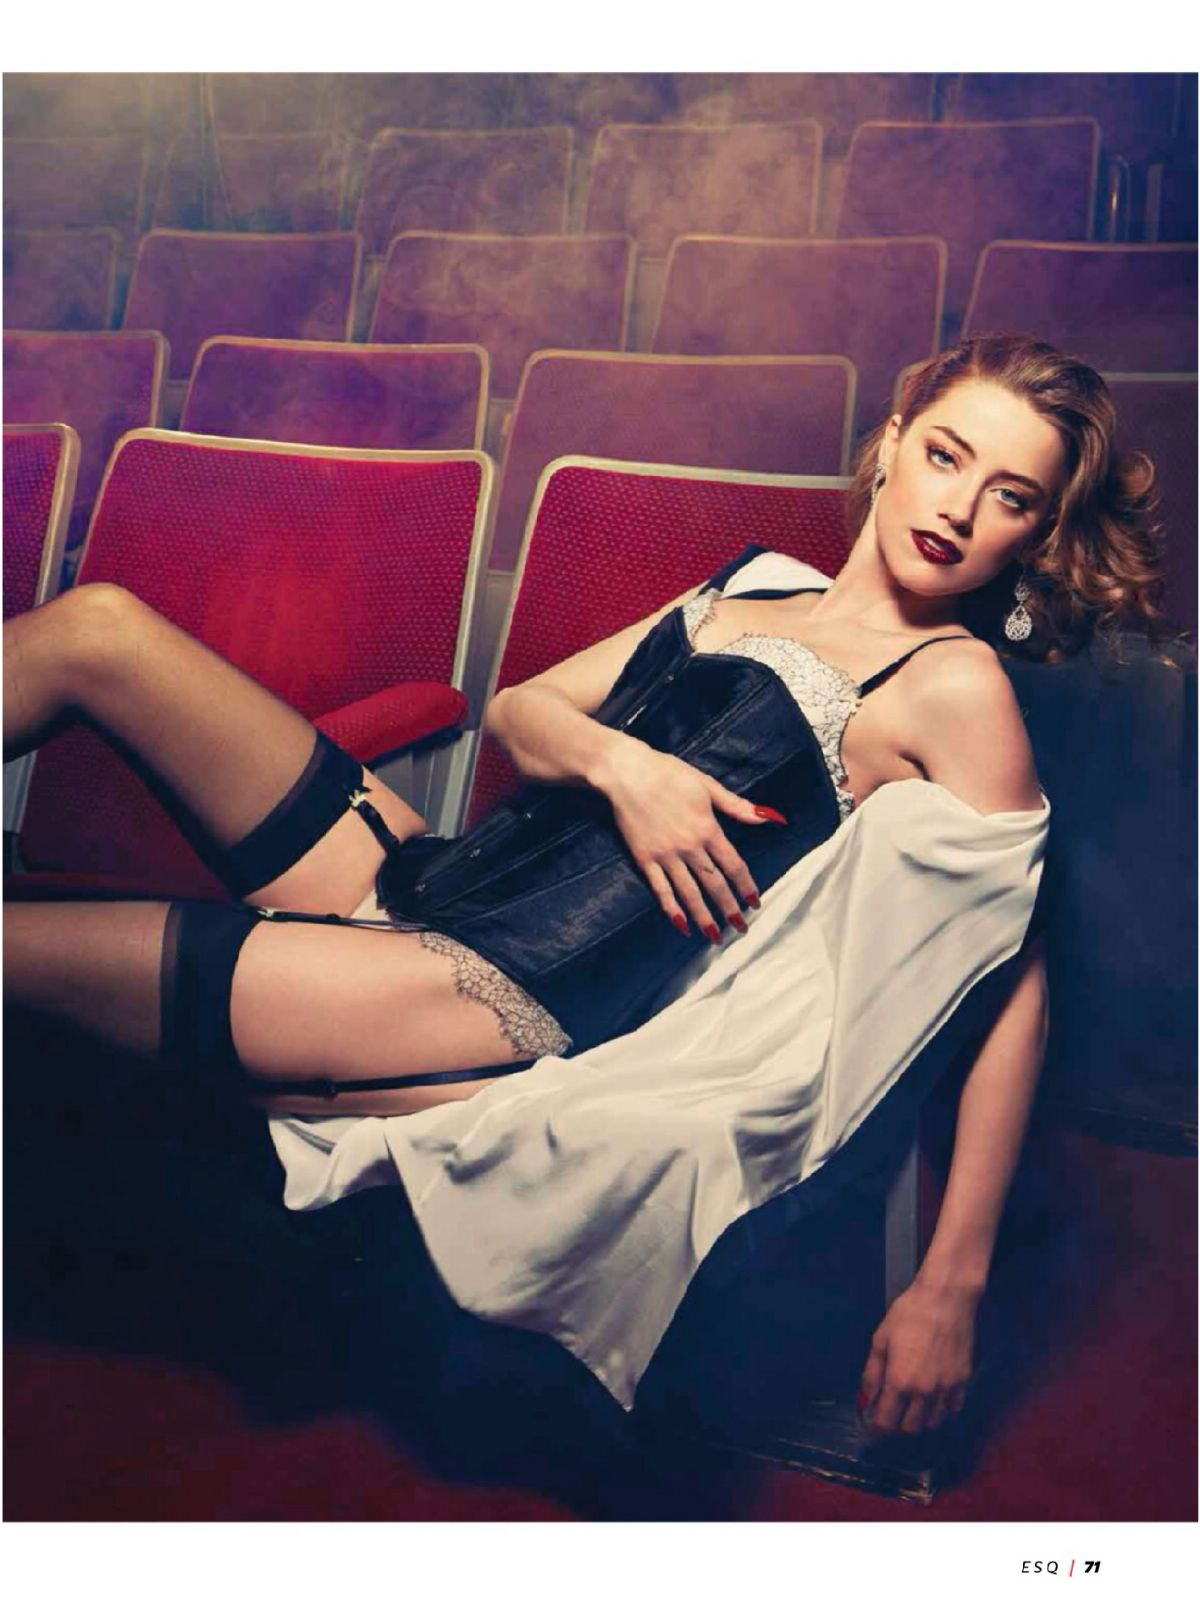 amber-heard-in-esquire-latino-magazine-2014-issue_5